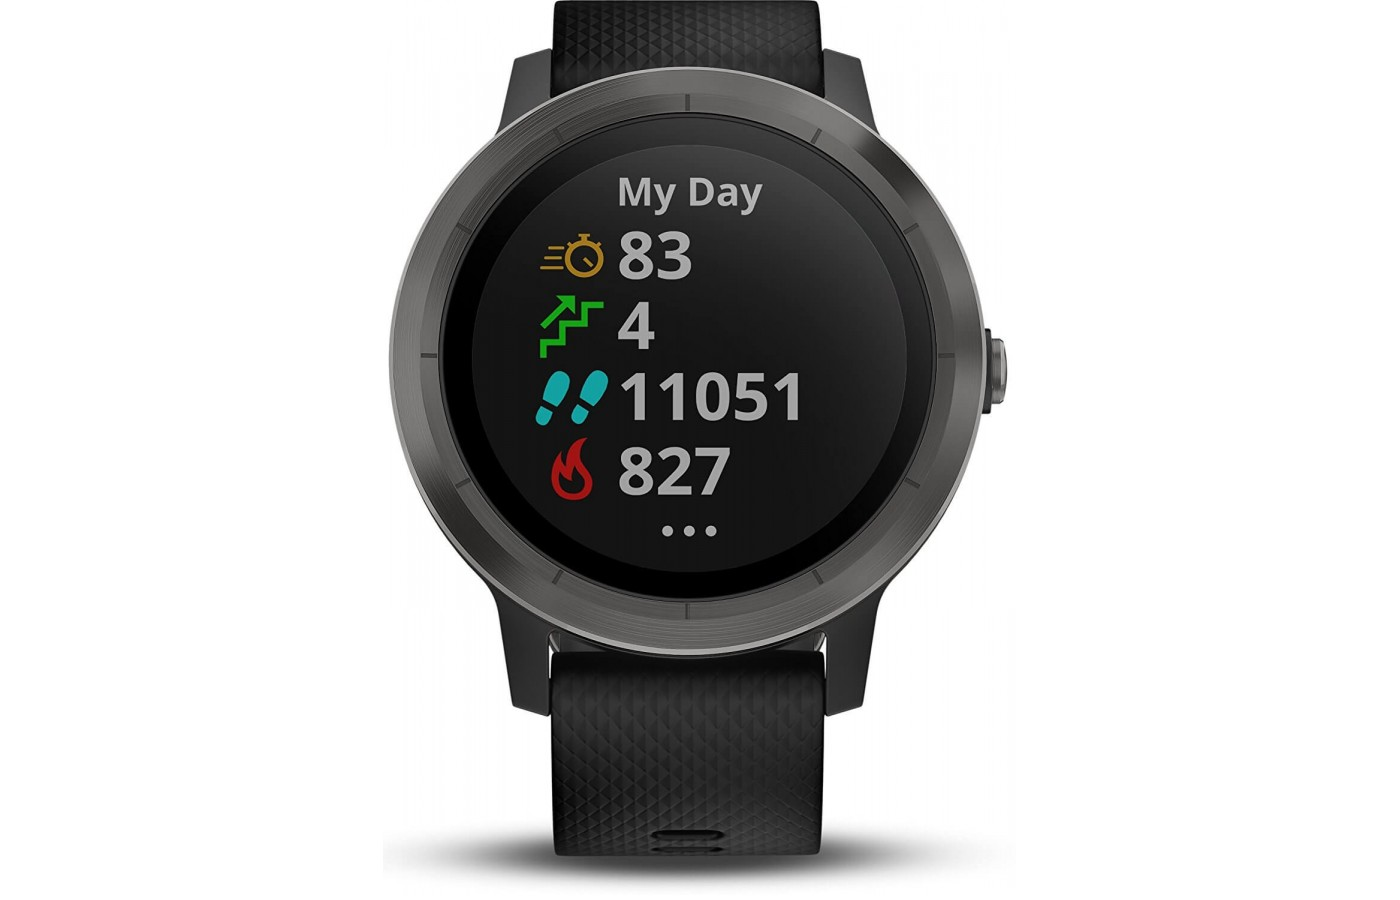 The Garmin Vivoactive 3 acts as a daily fitness tracker